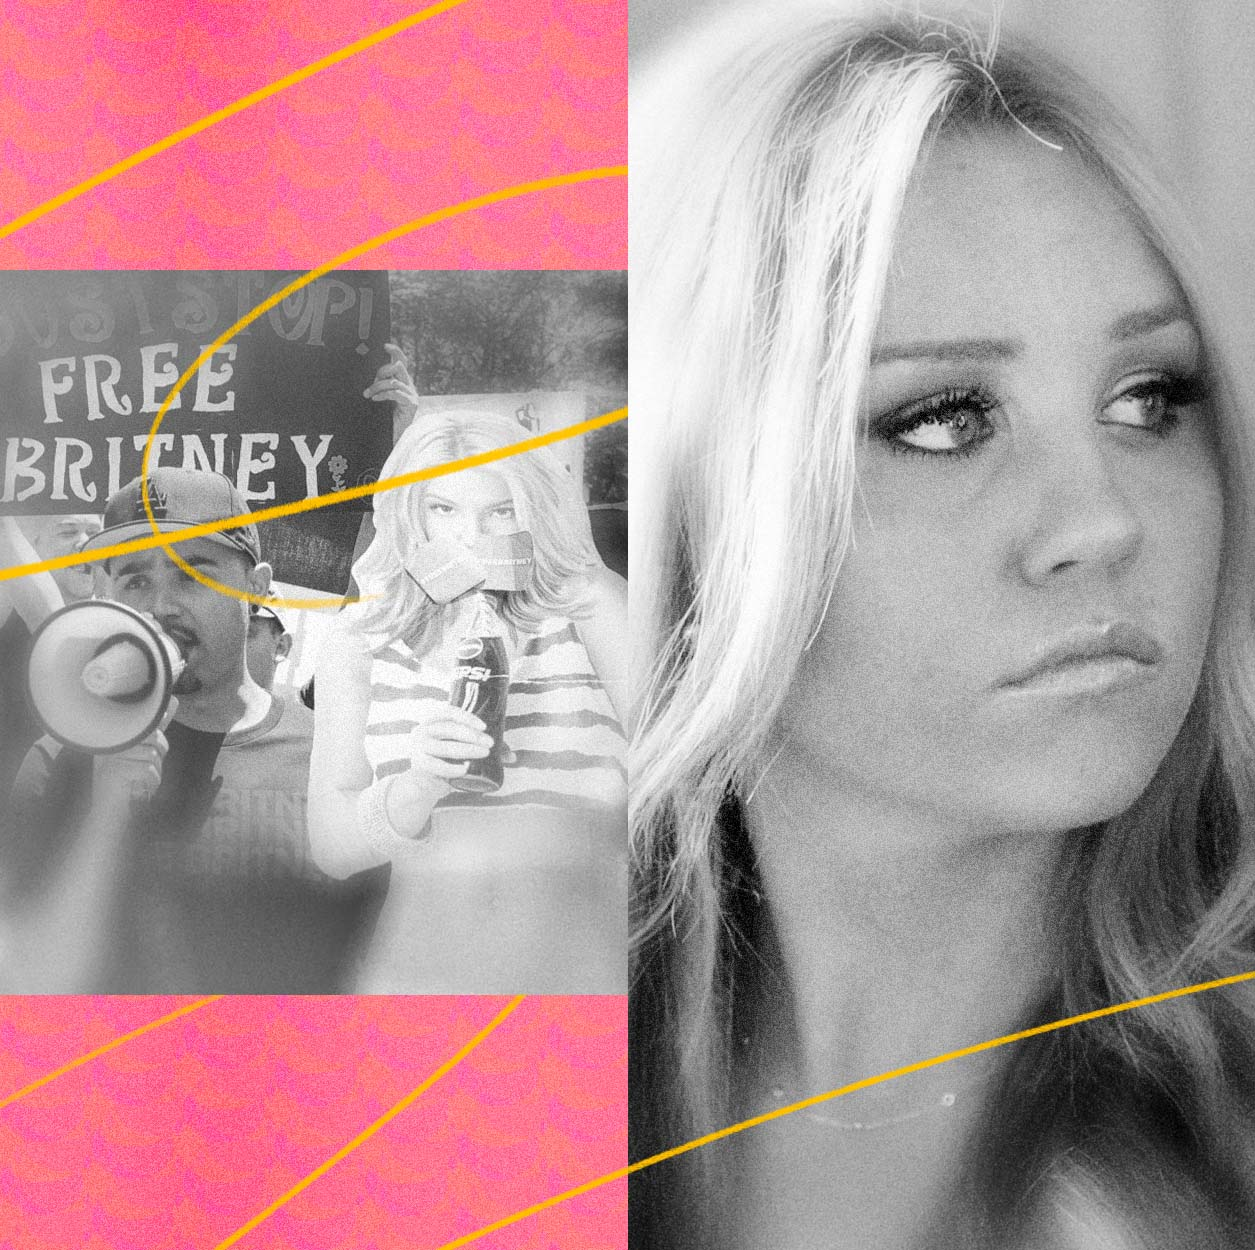 Britney Spears and Amanda Bynes both have conservatorships. Why are they so different?